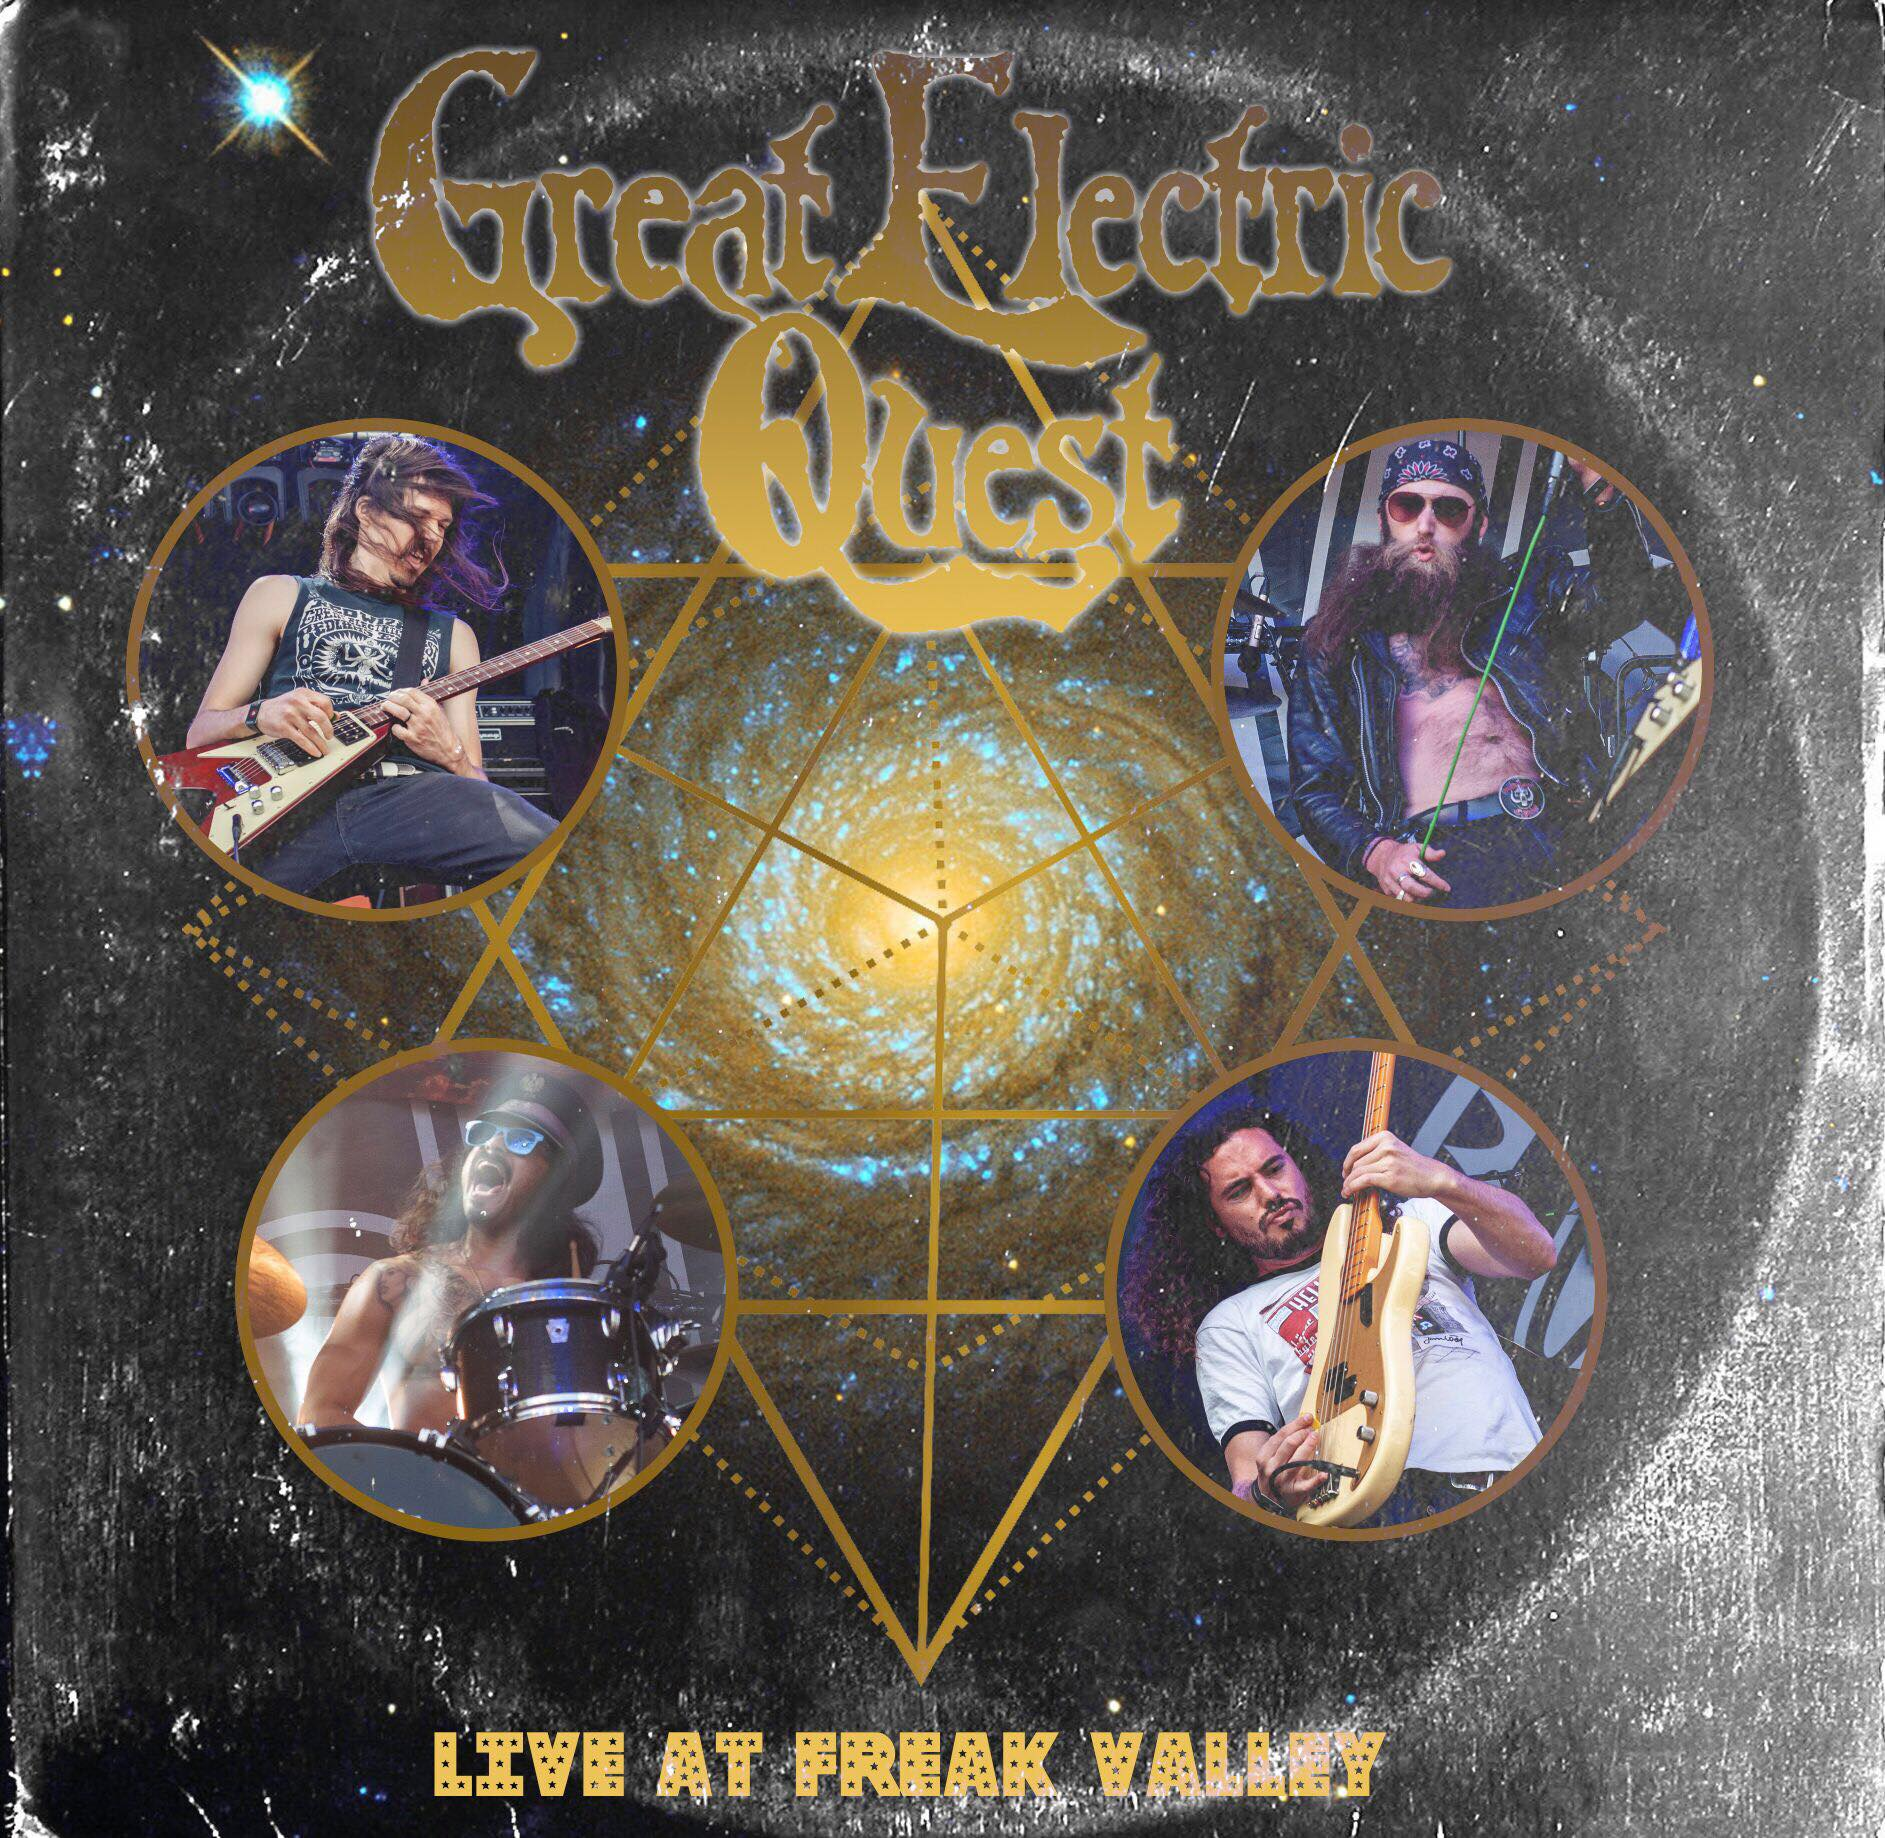 great electric quest live at freak valley